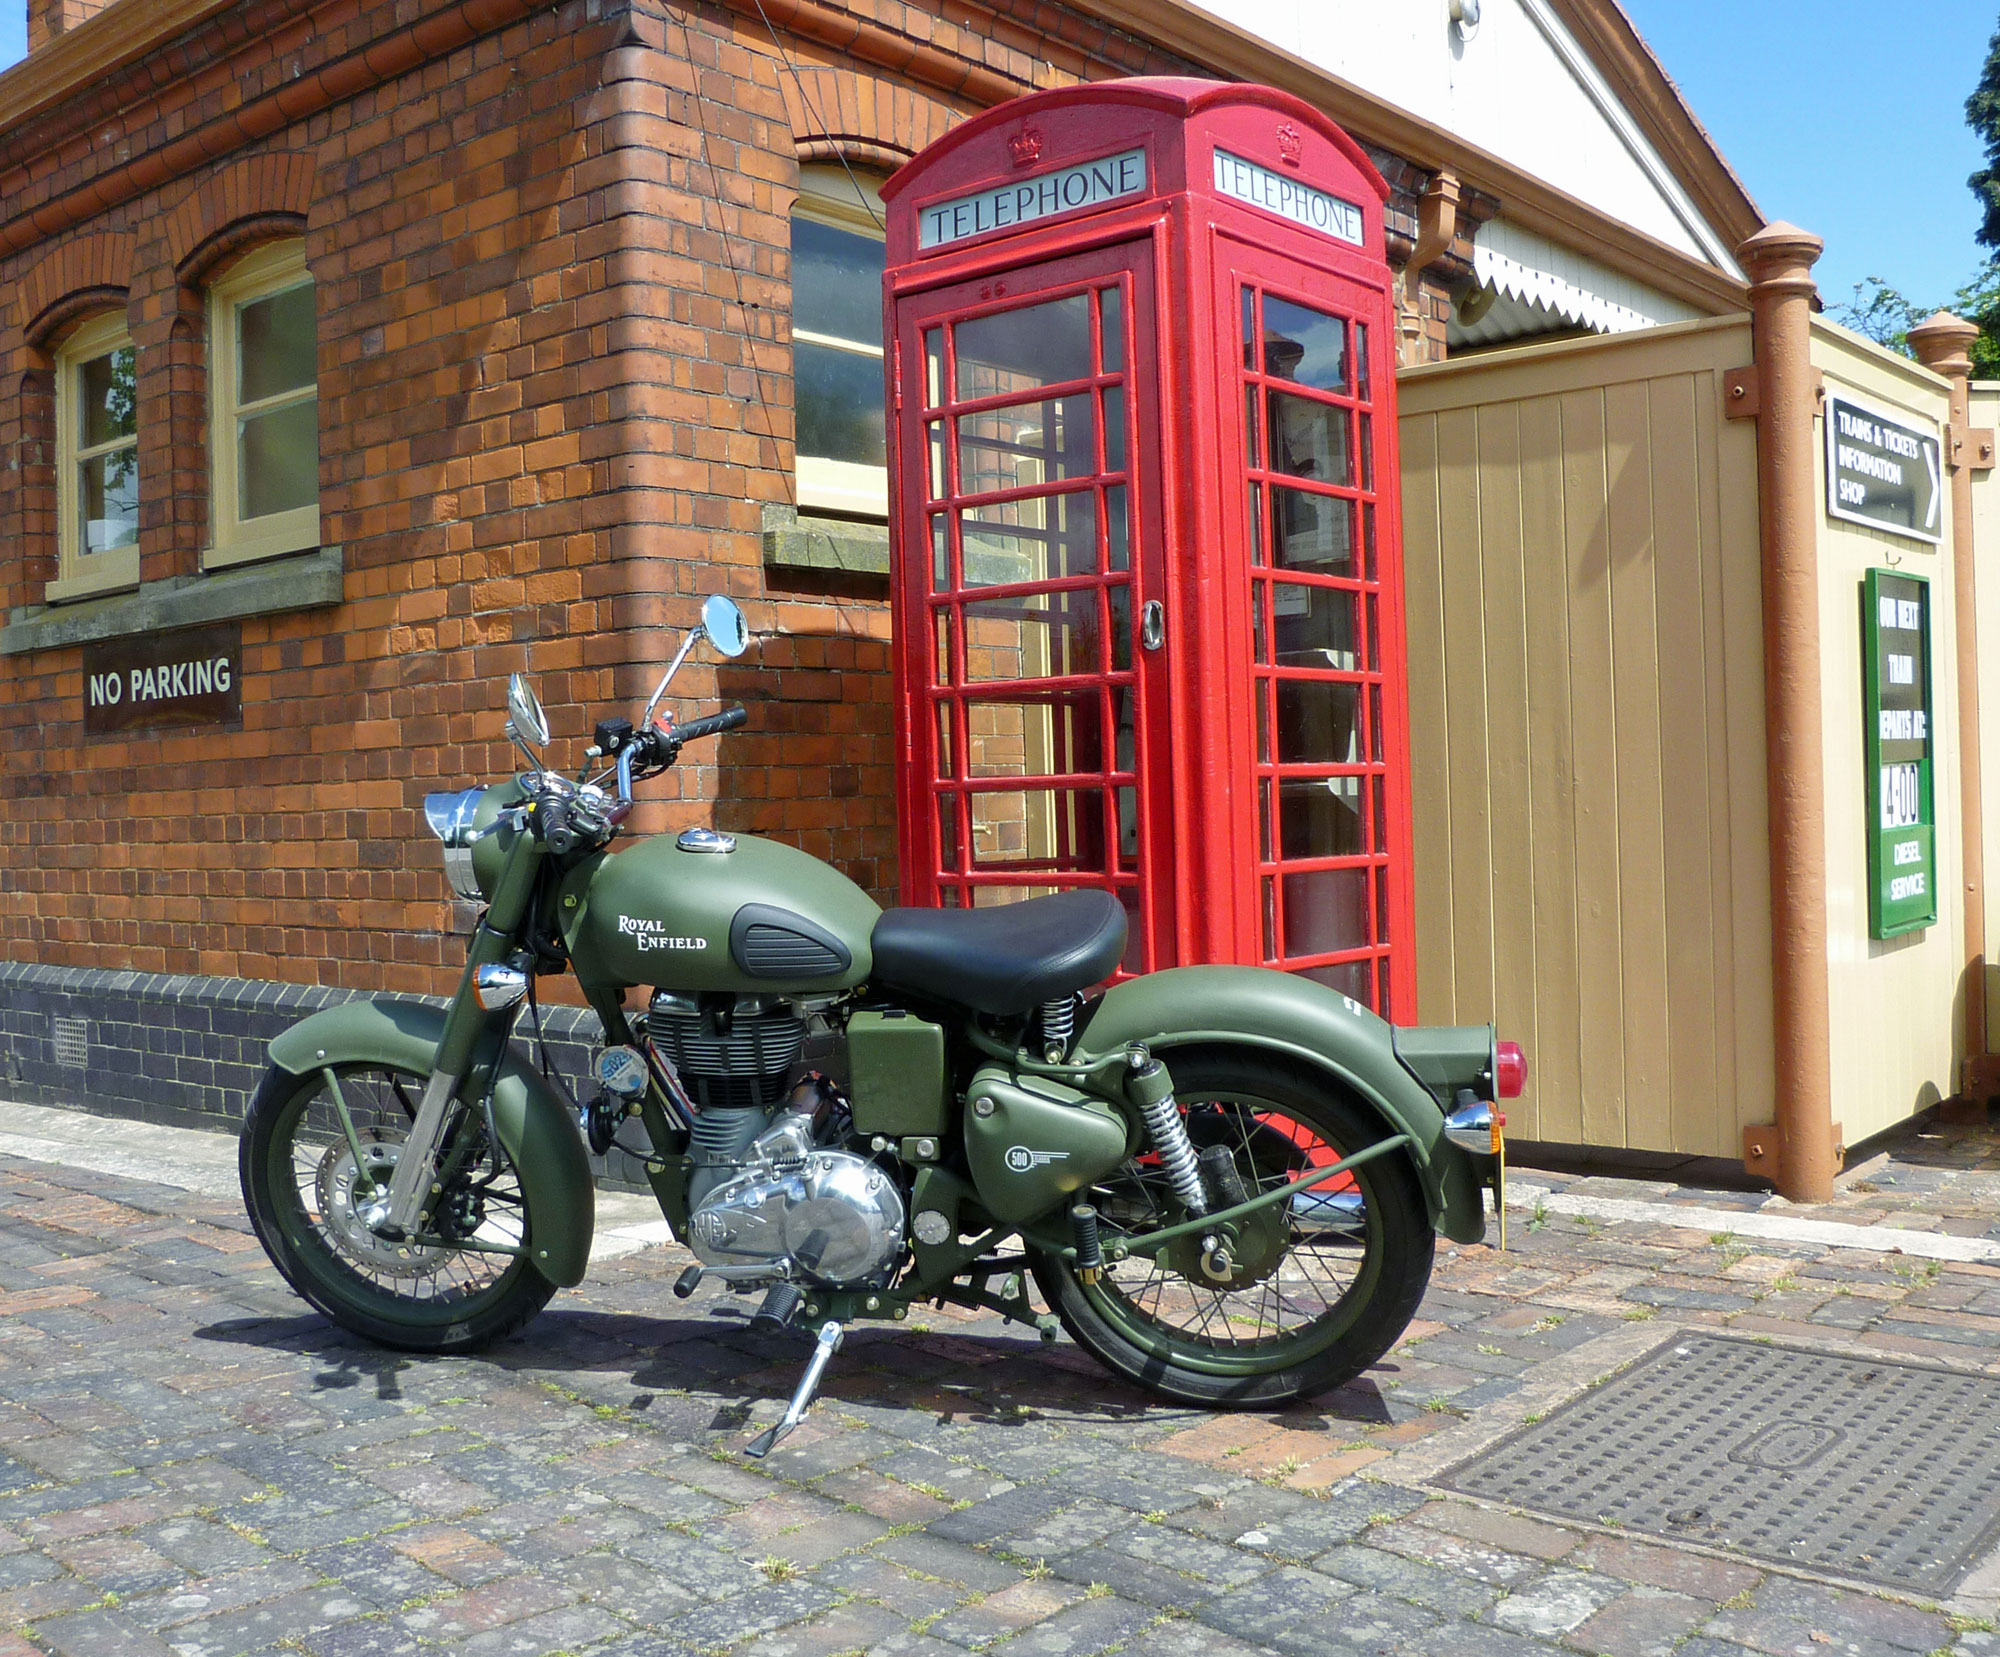 Royal Enfield Bullet 500 Army 1992 images #123390